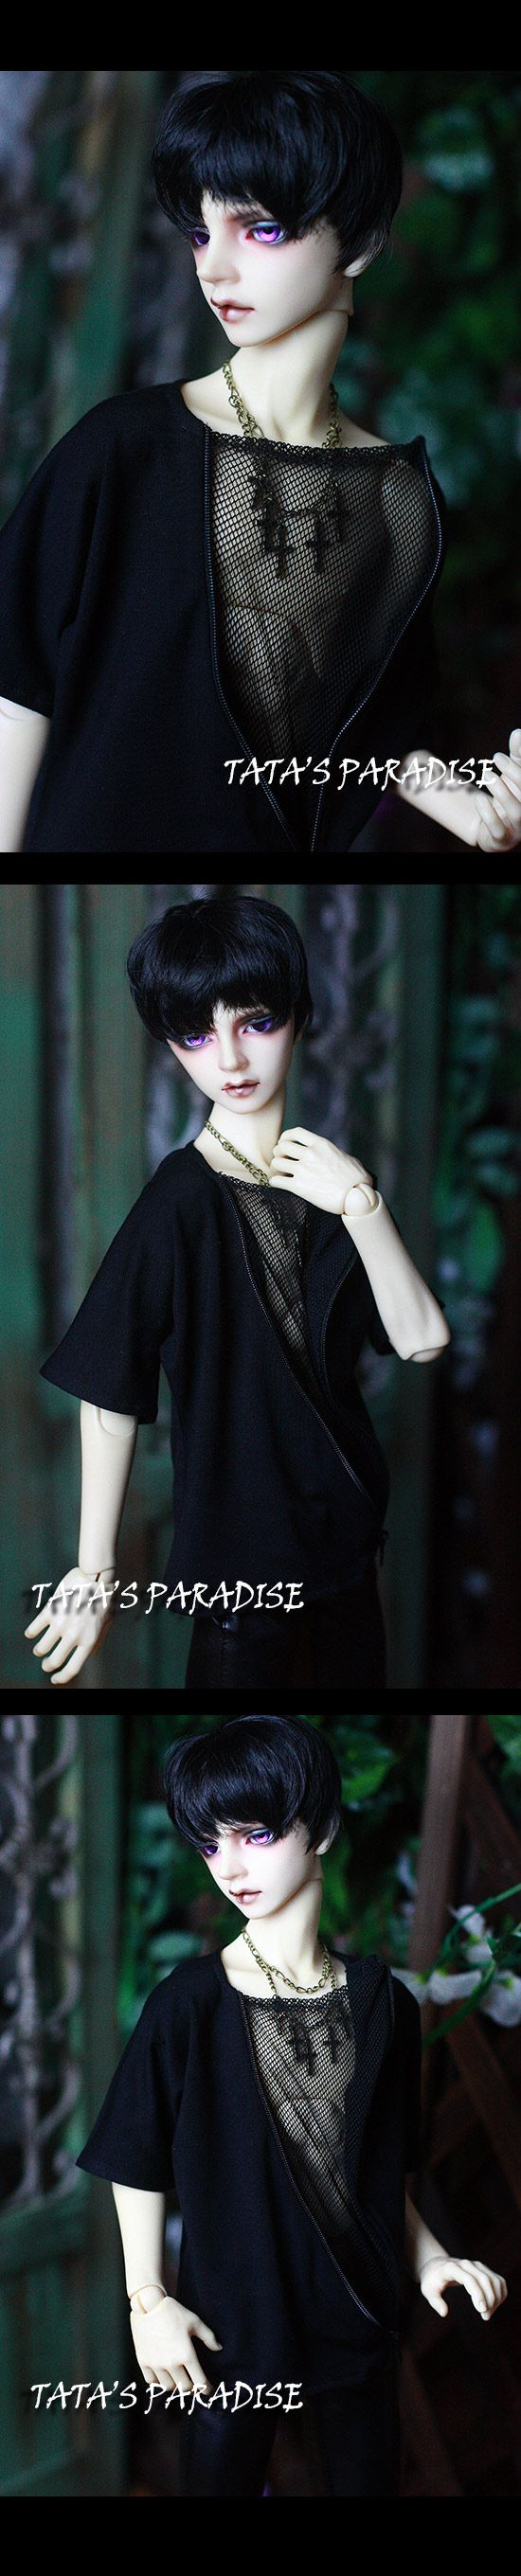 NO:SRT228 Mafee-x_SD13/LUTS/DOT/AA/AS/LATI Boy Outfits_TA·CLOTHES_TATA'S PARADISE